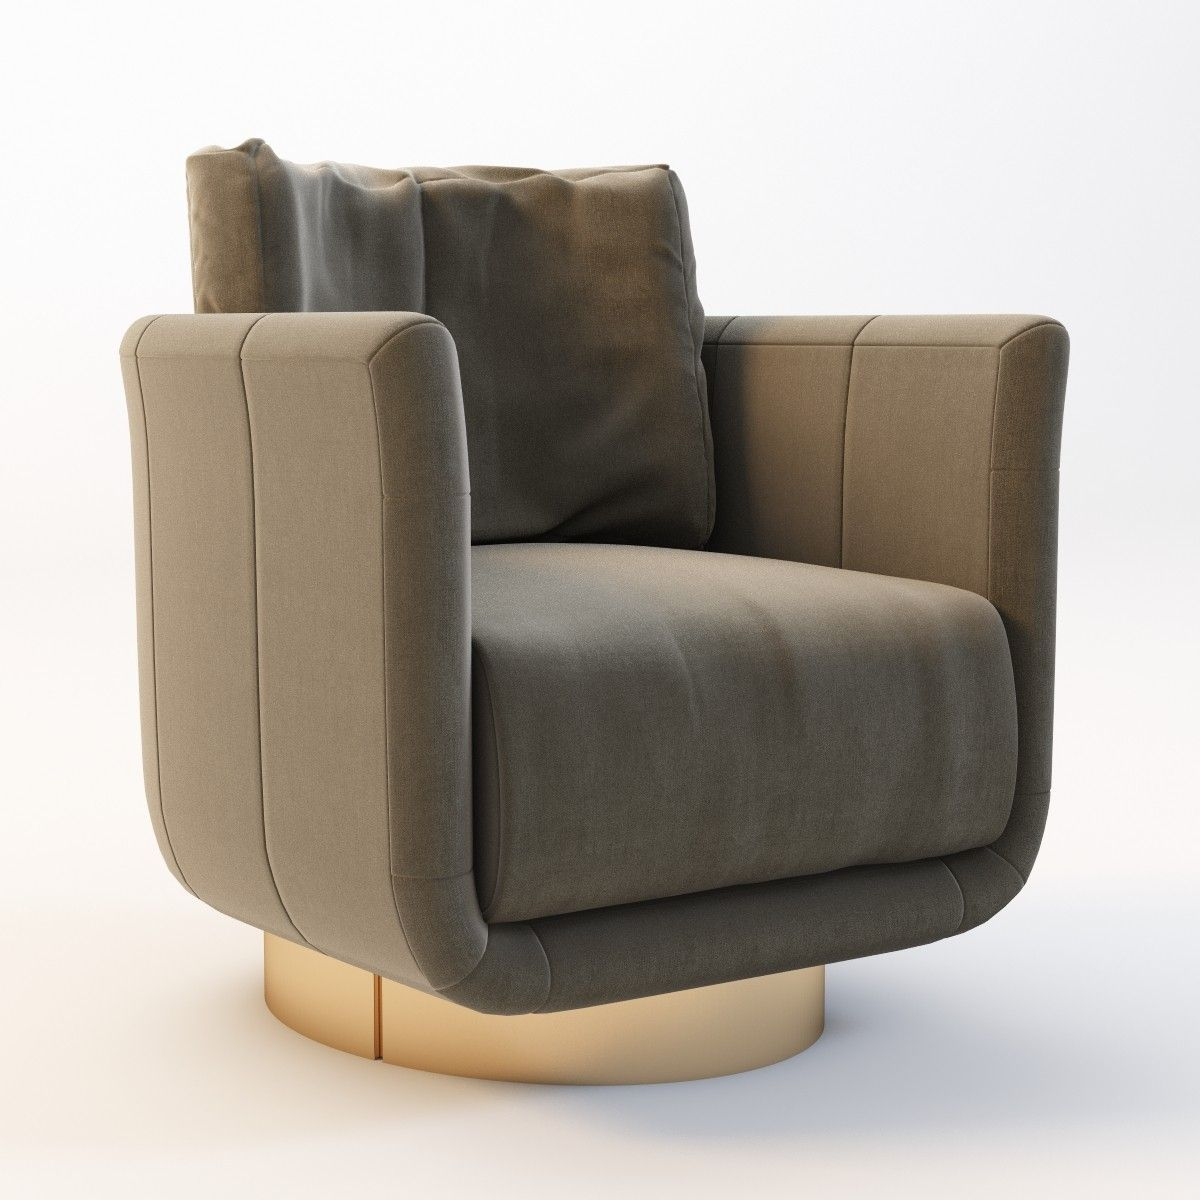 Fendi 3D Models and Textures | TurboSquid com | Chairs in 2019